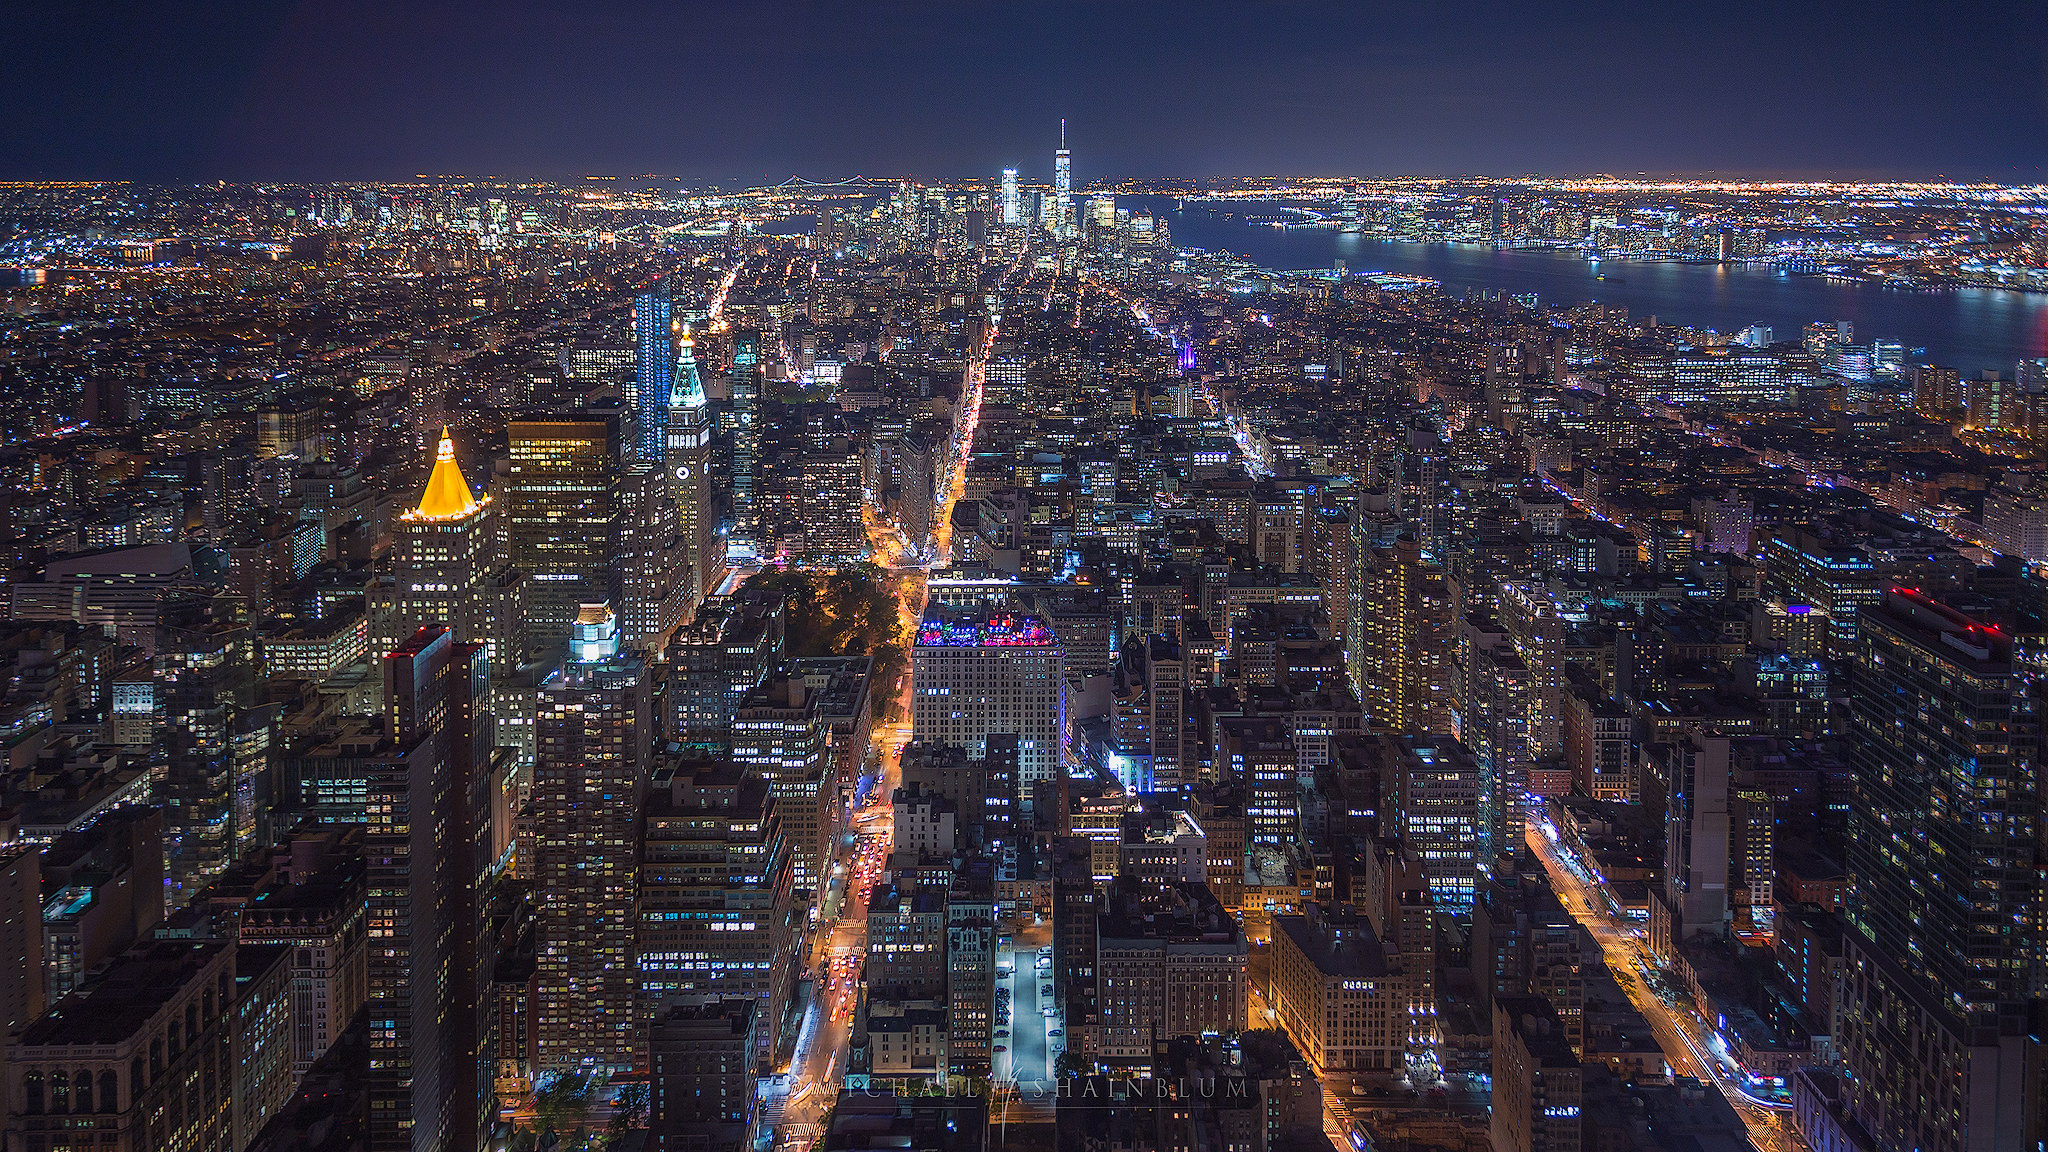 New York City Timelapse, Cityscape Photography